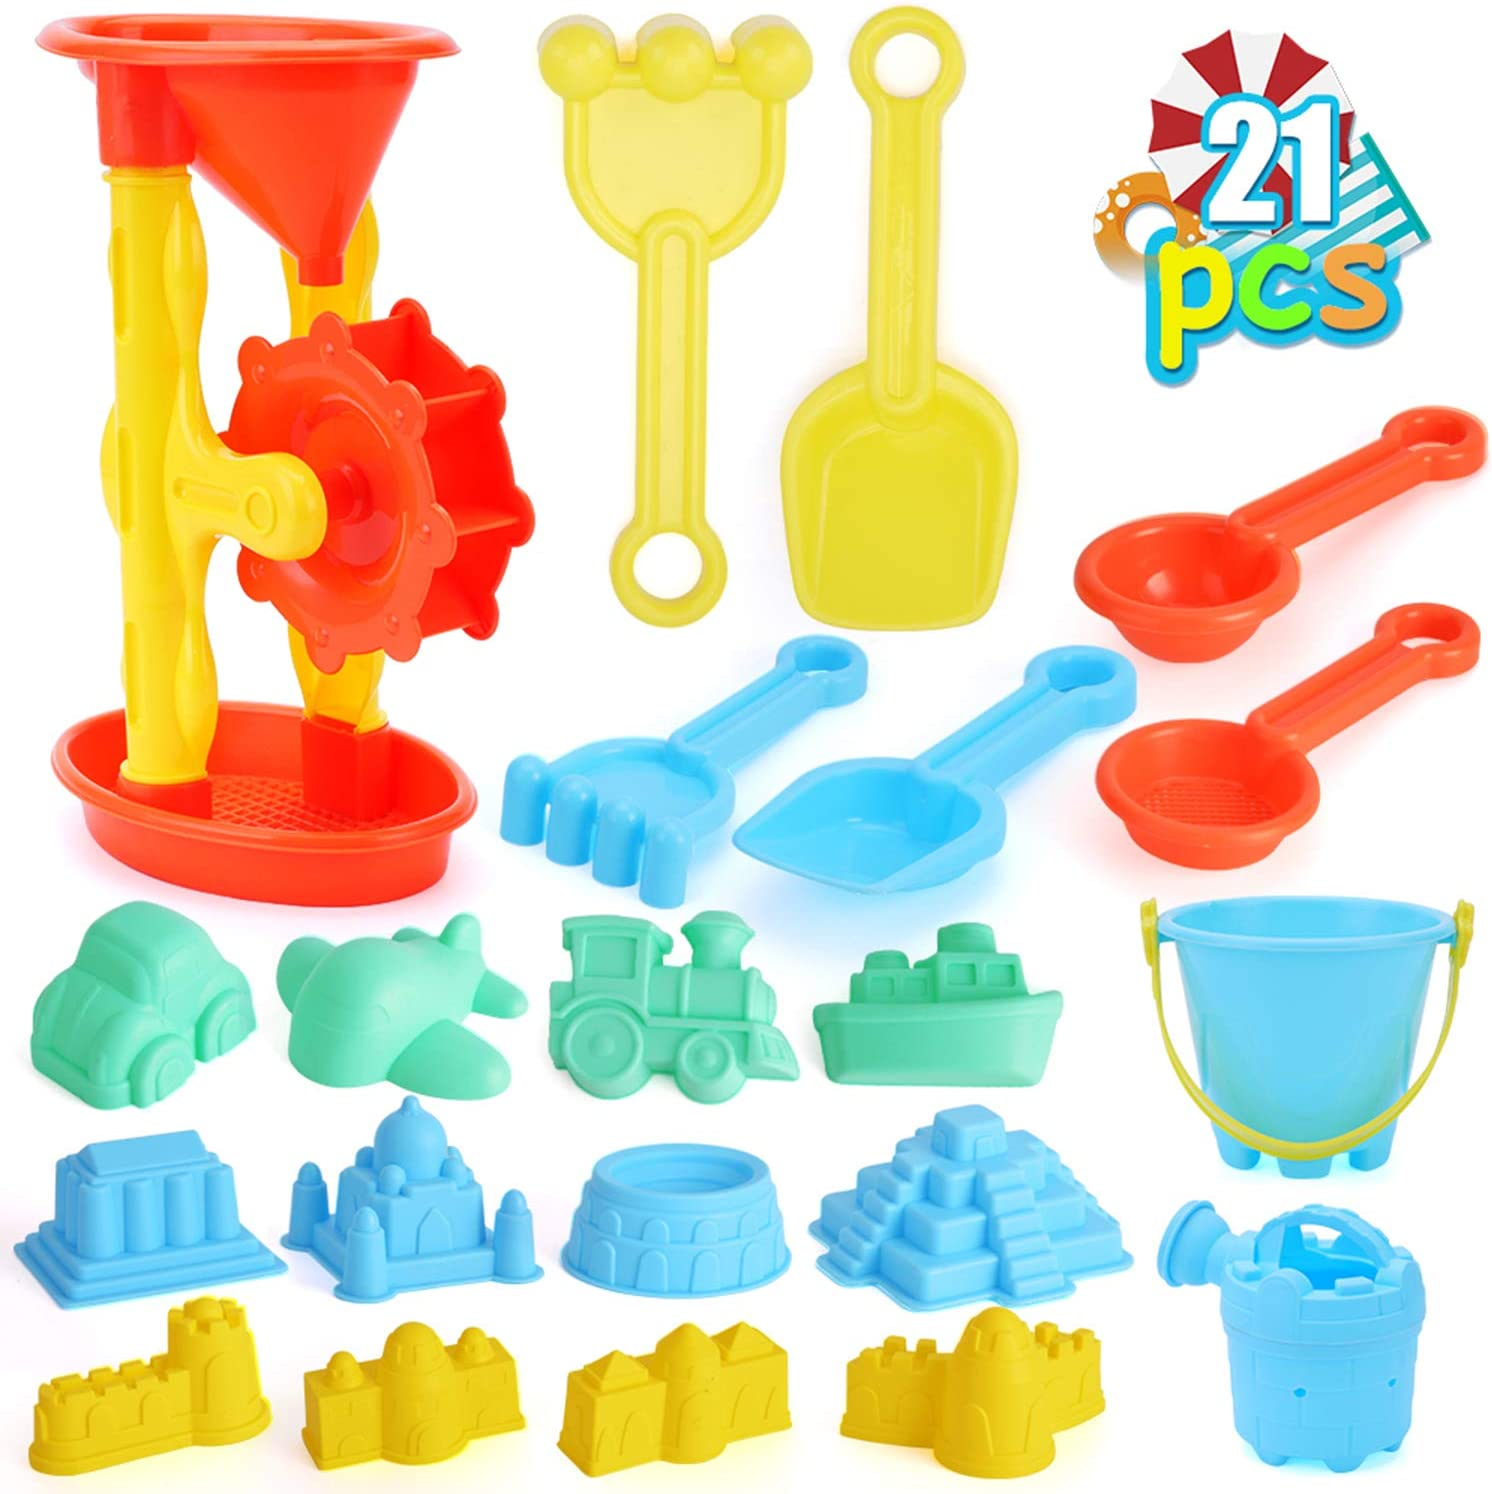 Qutasivary 22pcs Beach Sand Al sold out. Toys Set with Assembled San Very popular for Kids